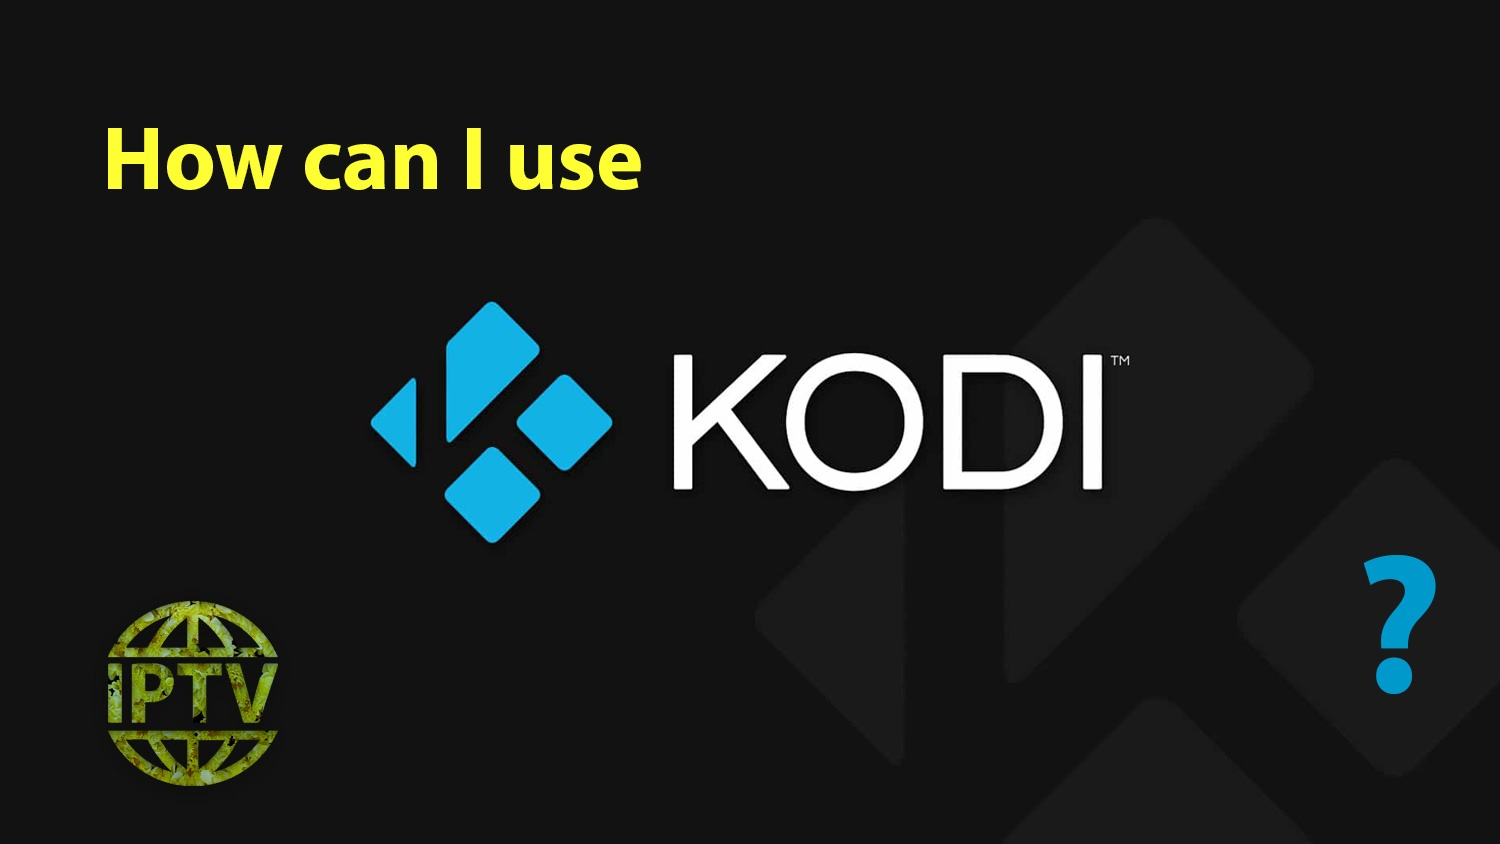 HOW-CAN-I-USE-KODI